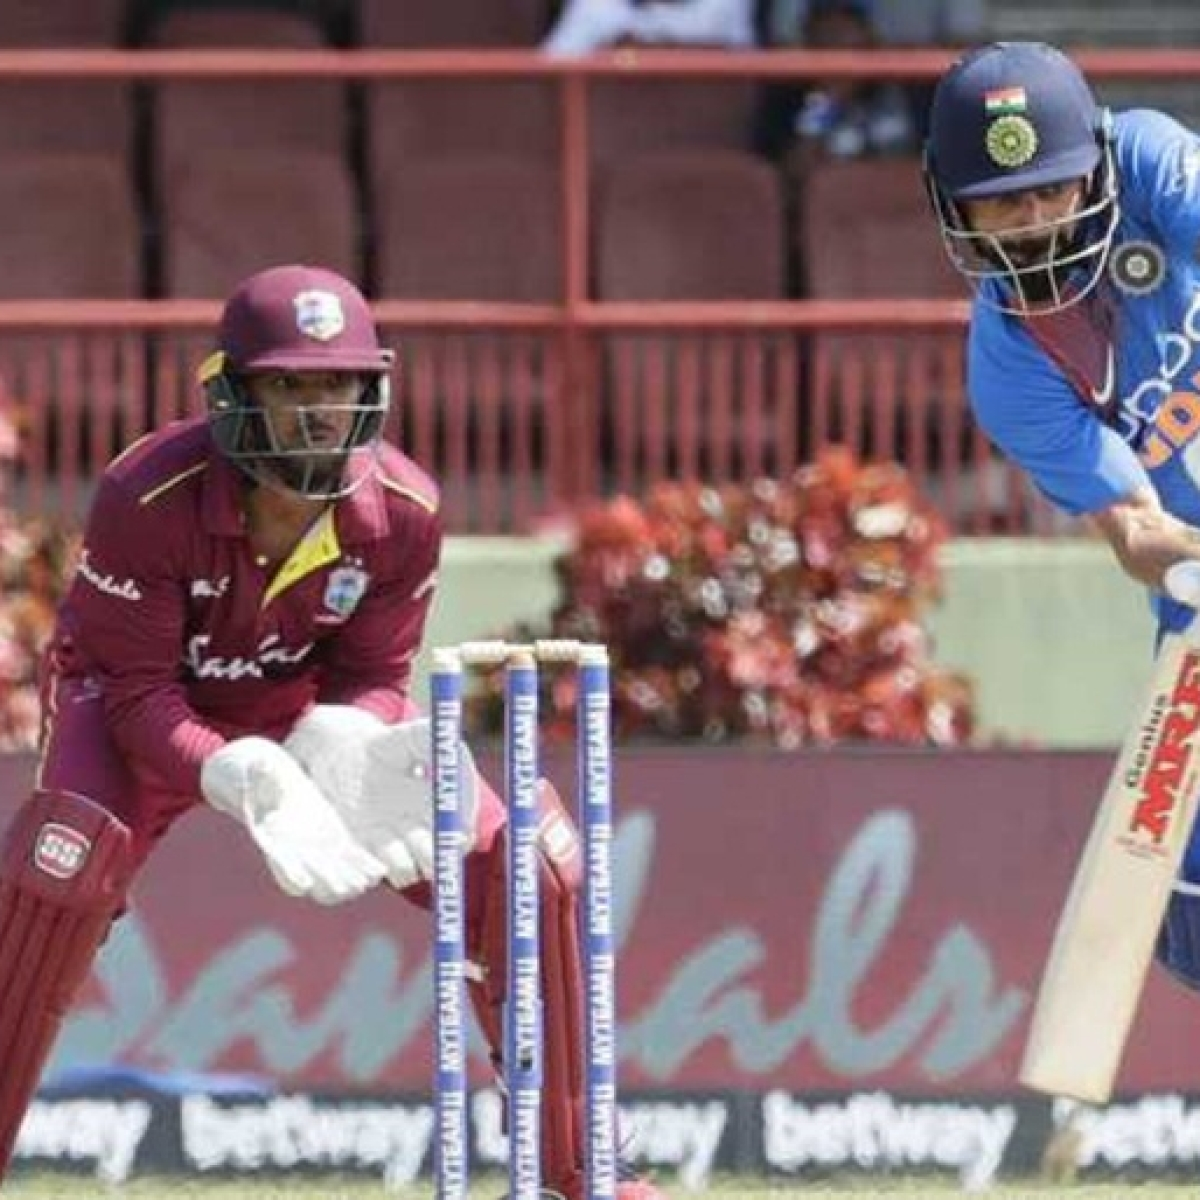 India vs West Indies 2019, 1st ODI: Live telecast and streaming, when and where to watch